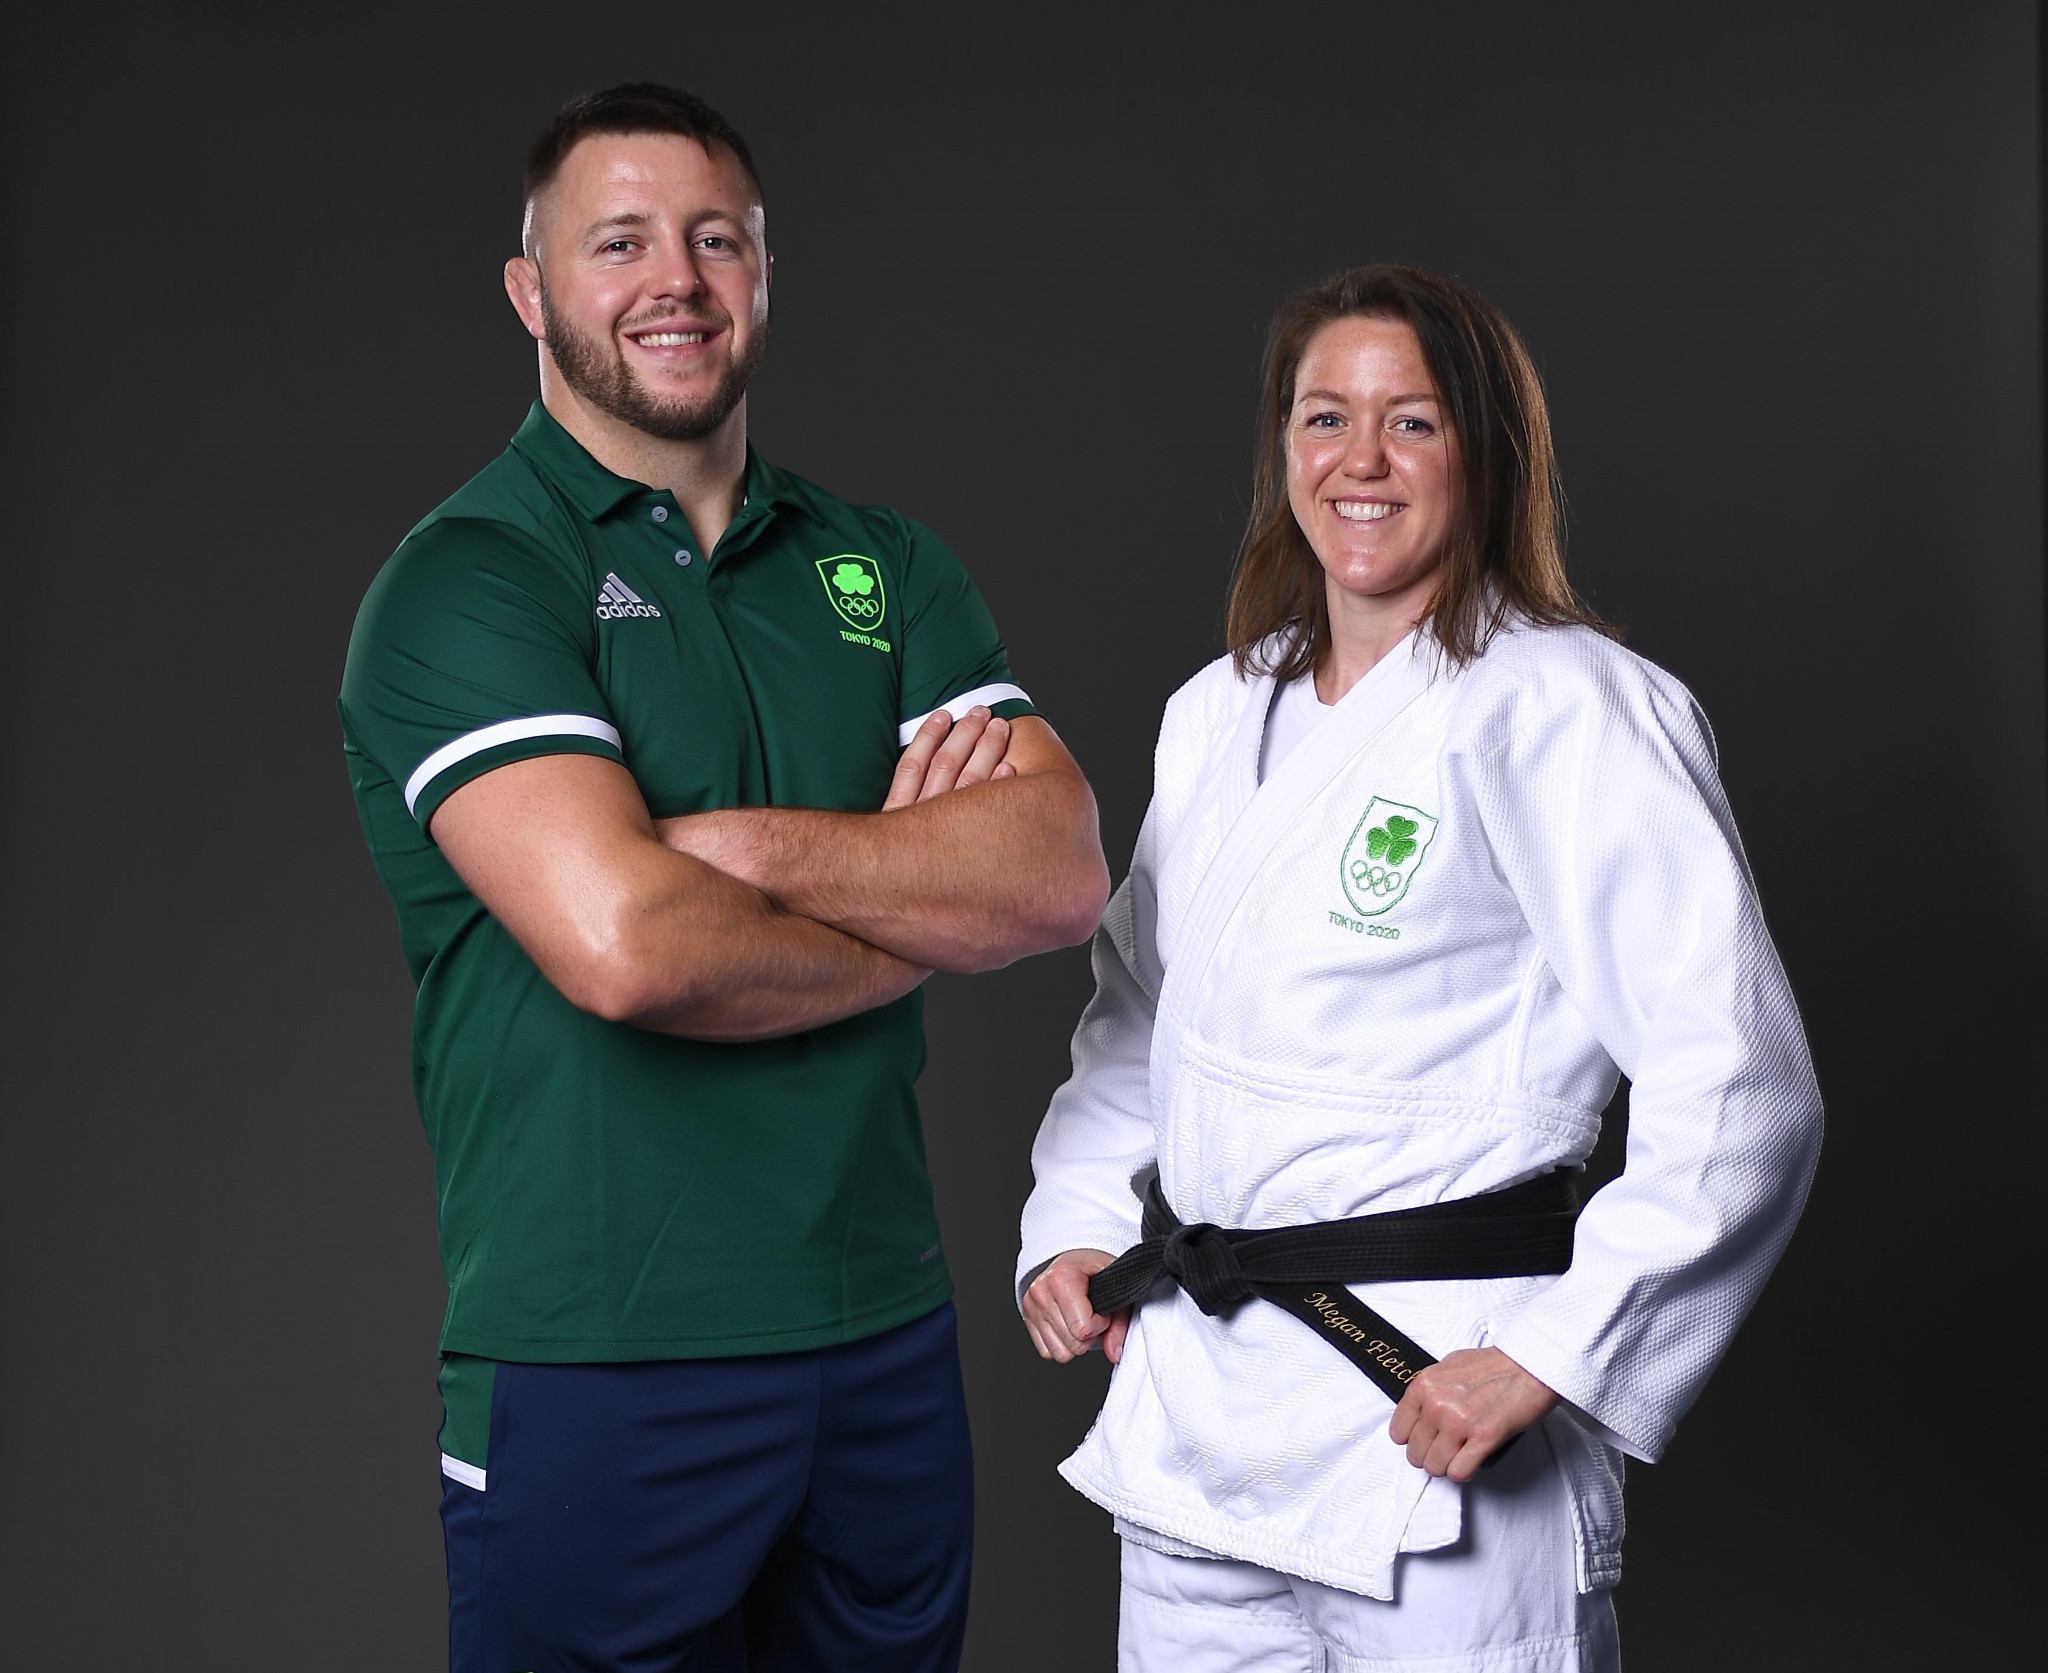 Judo siblings cap Ireland's largest-ever Olympic team at Tokyo 2020